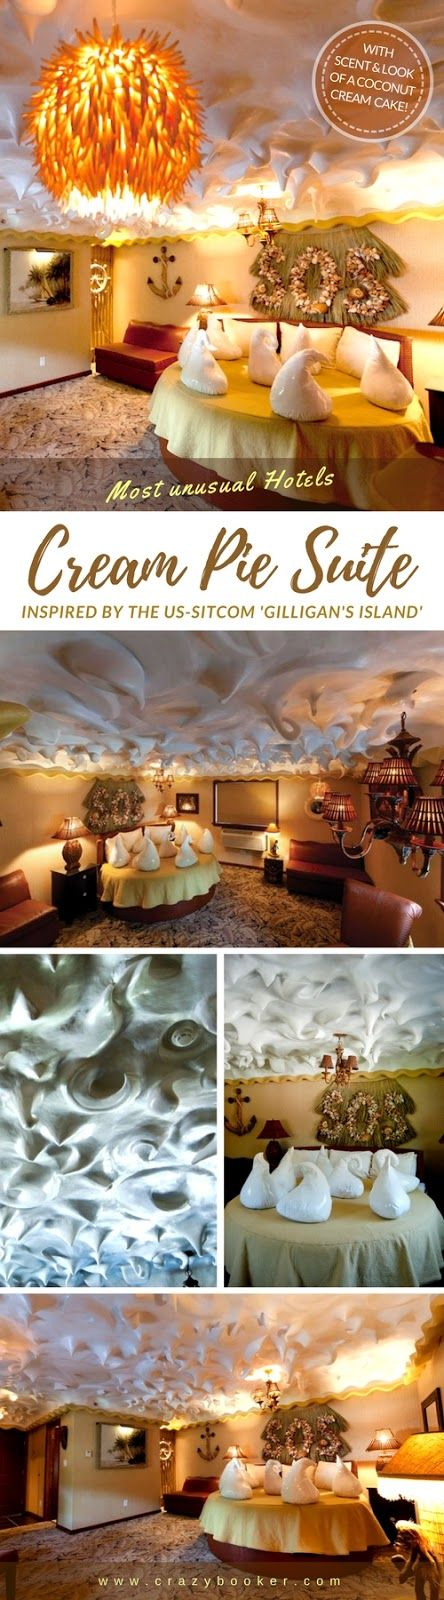 Robinson island themed hideout in New York state, inspired by a tasty coconut cream pie